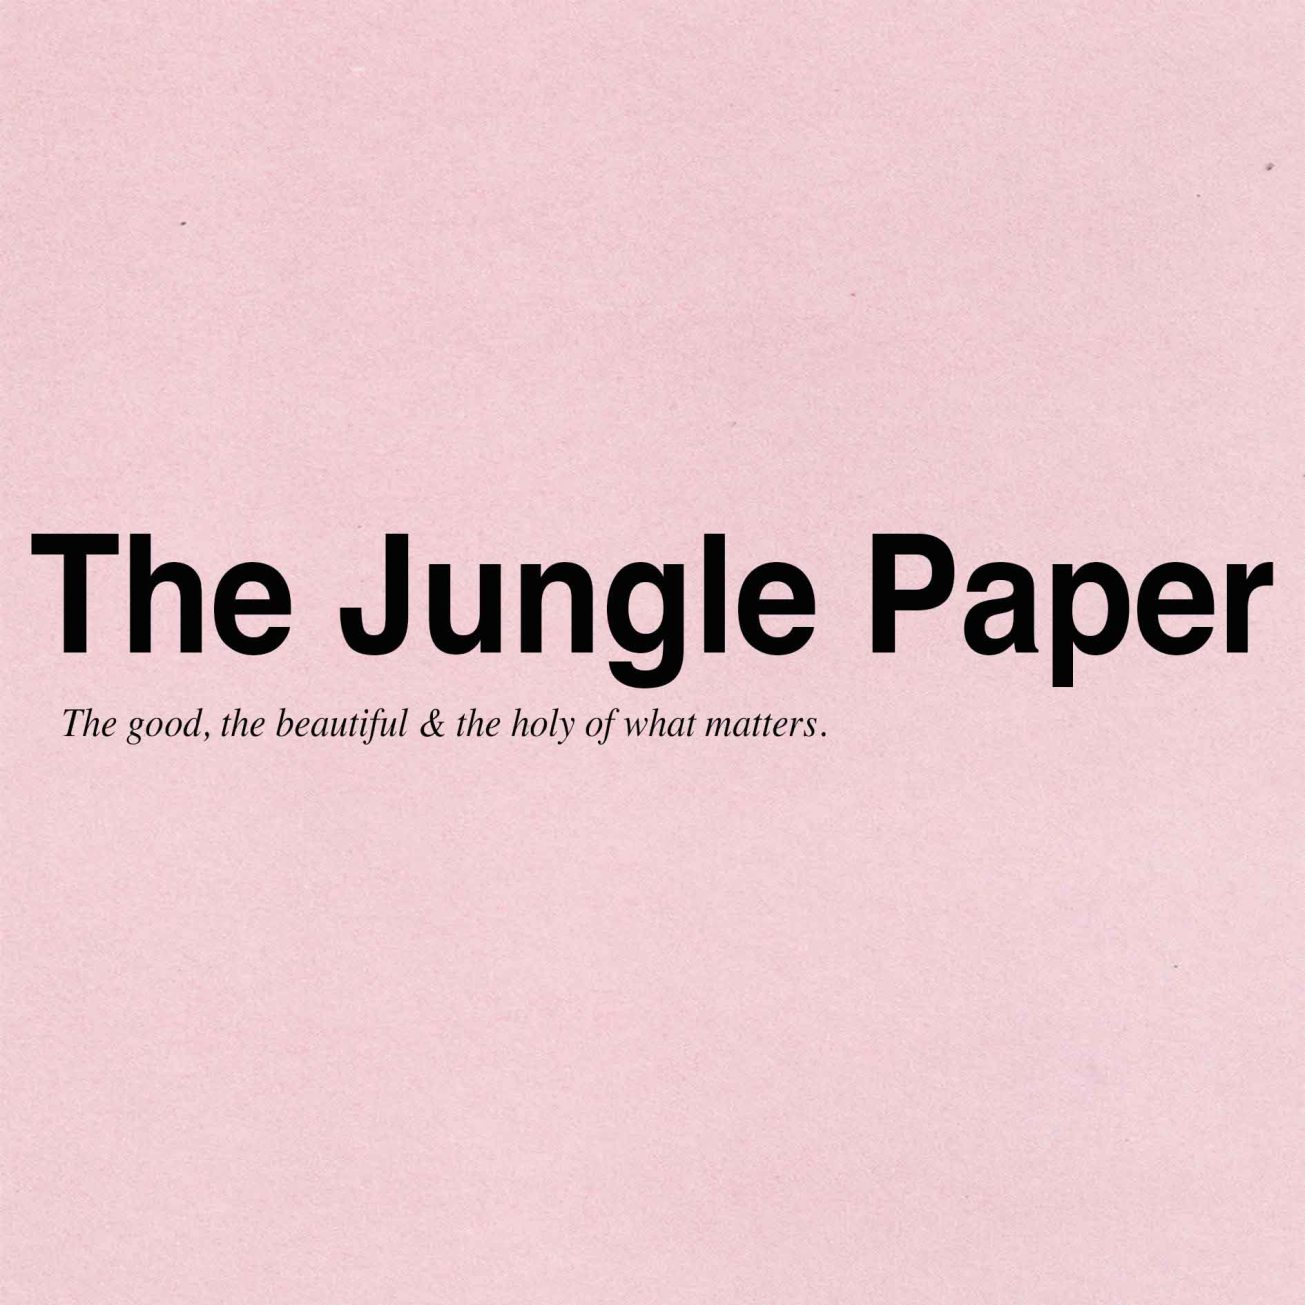 THE JUNGLE PAPER: The Good, The Beautiful & The Holy